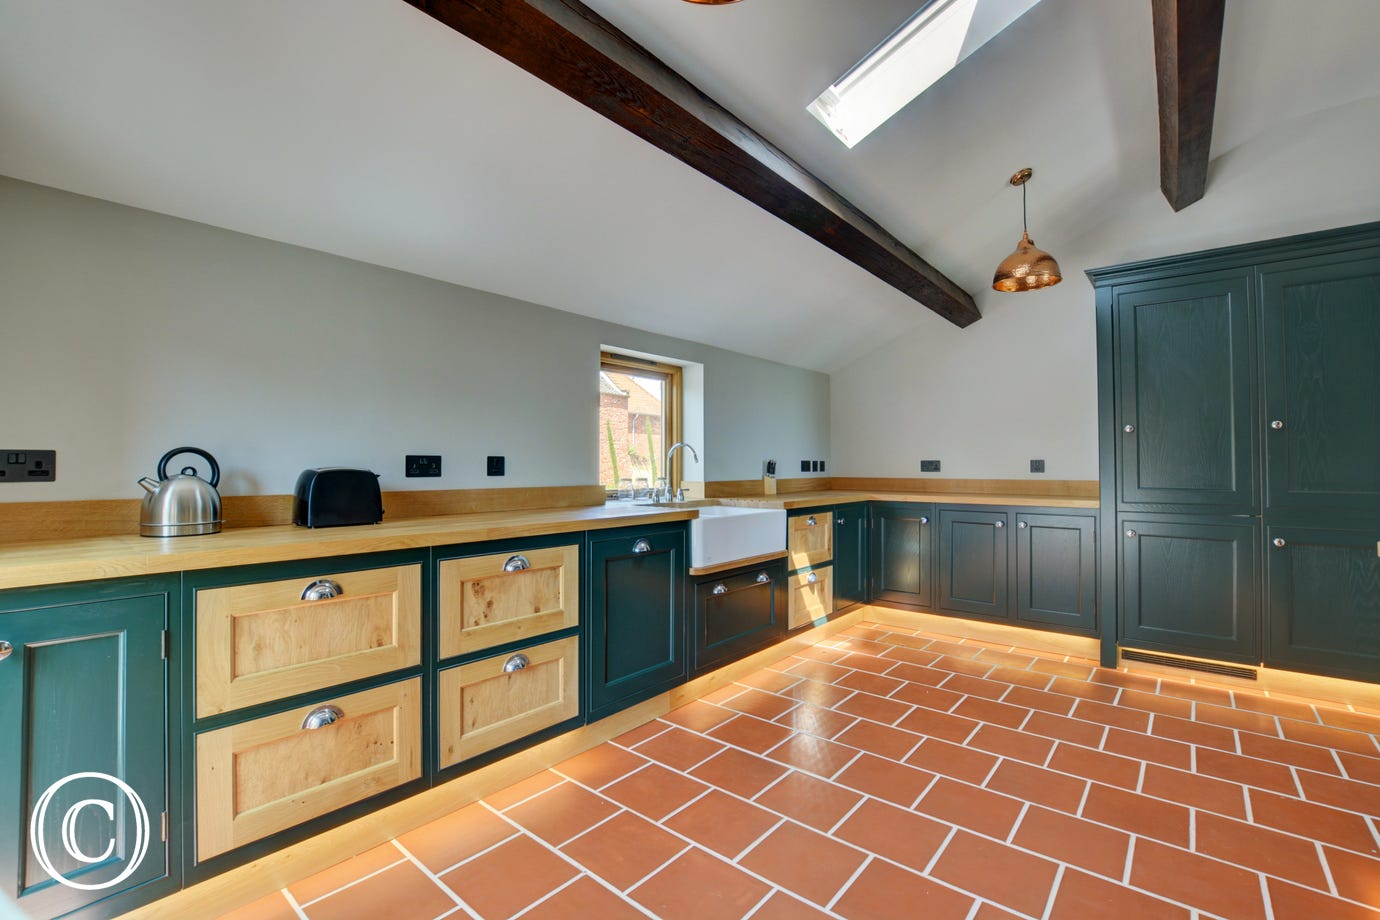 Light and spacious with electric built-in oven, electric induction hob, dishwasher, microwave, fridge/freezer, washing machine, tumble dryer, touch sensor under cupboard lighting